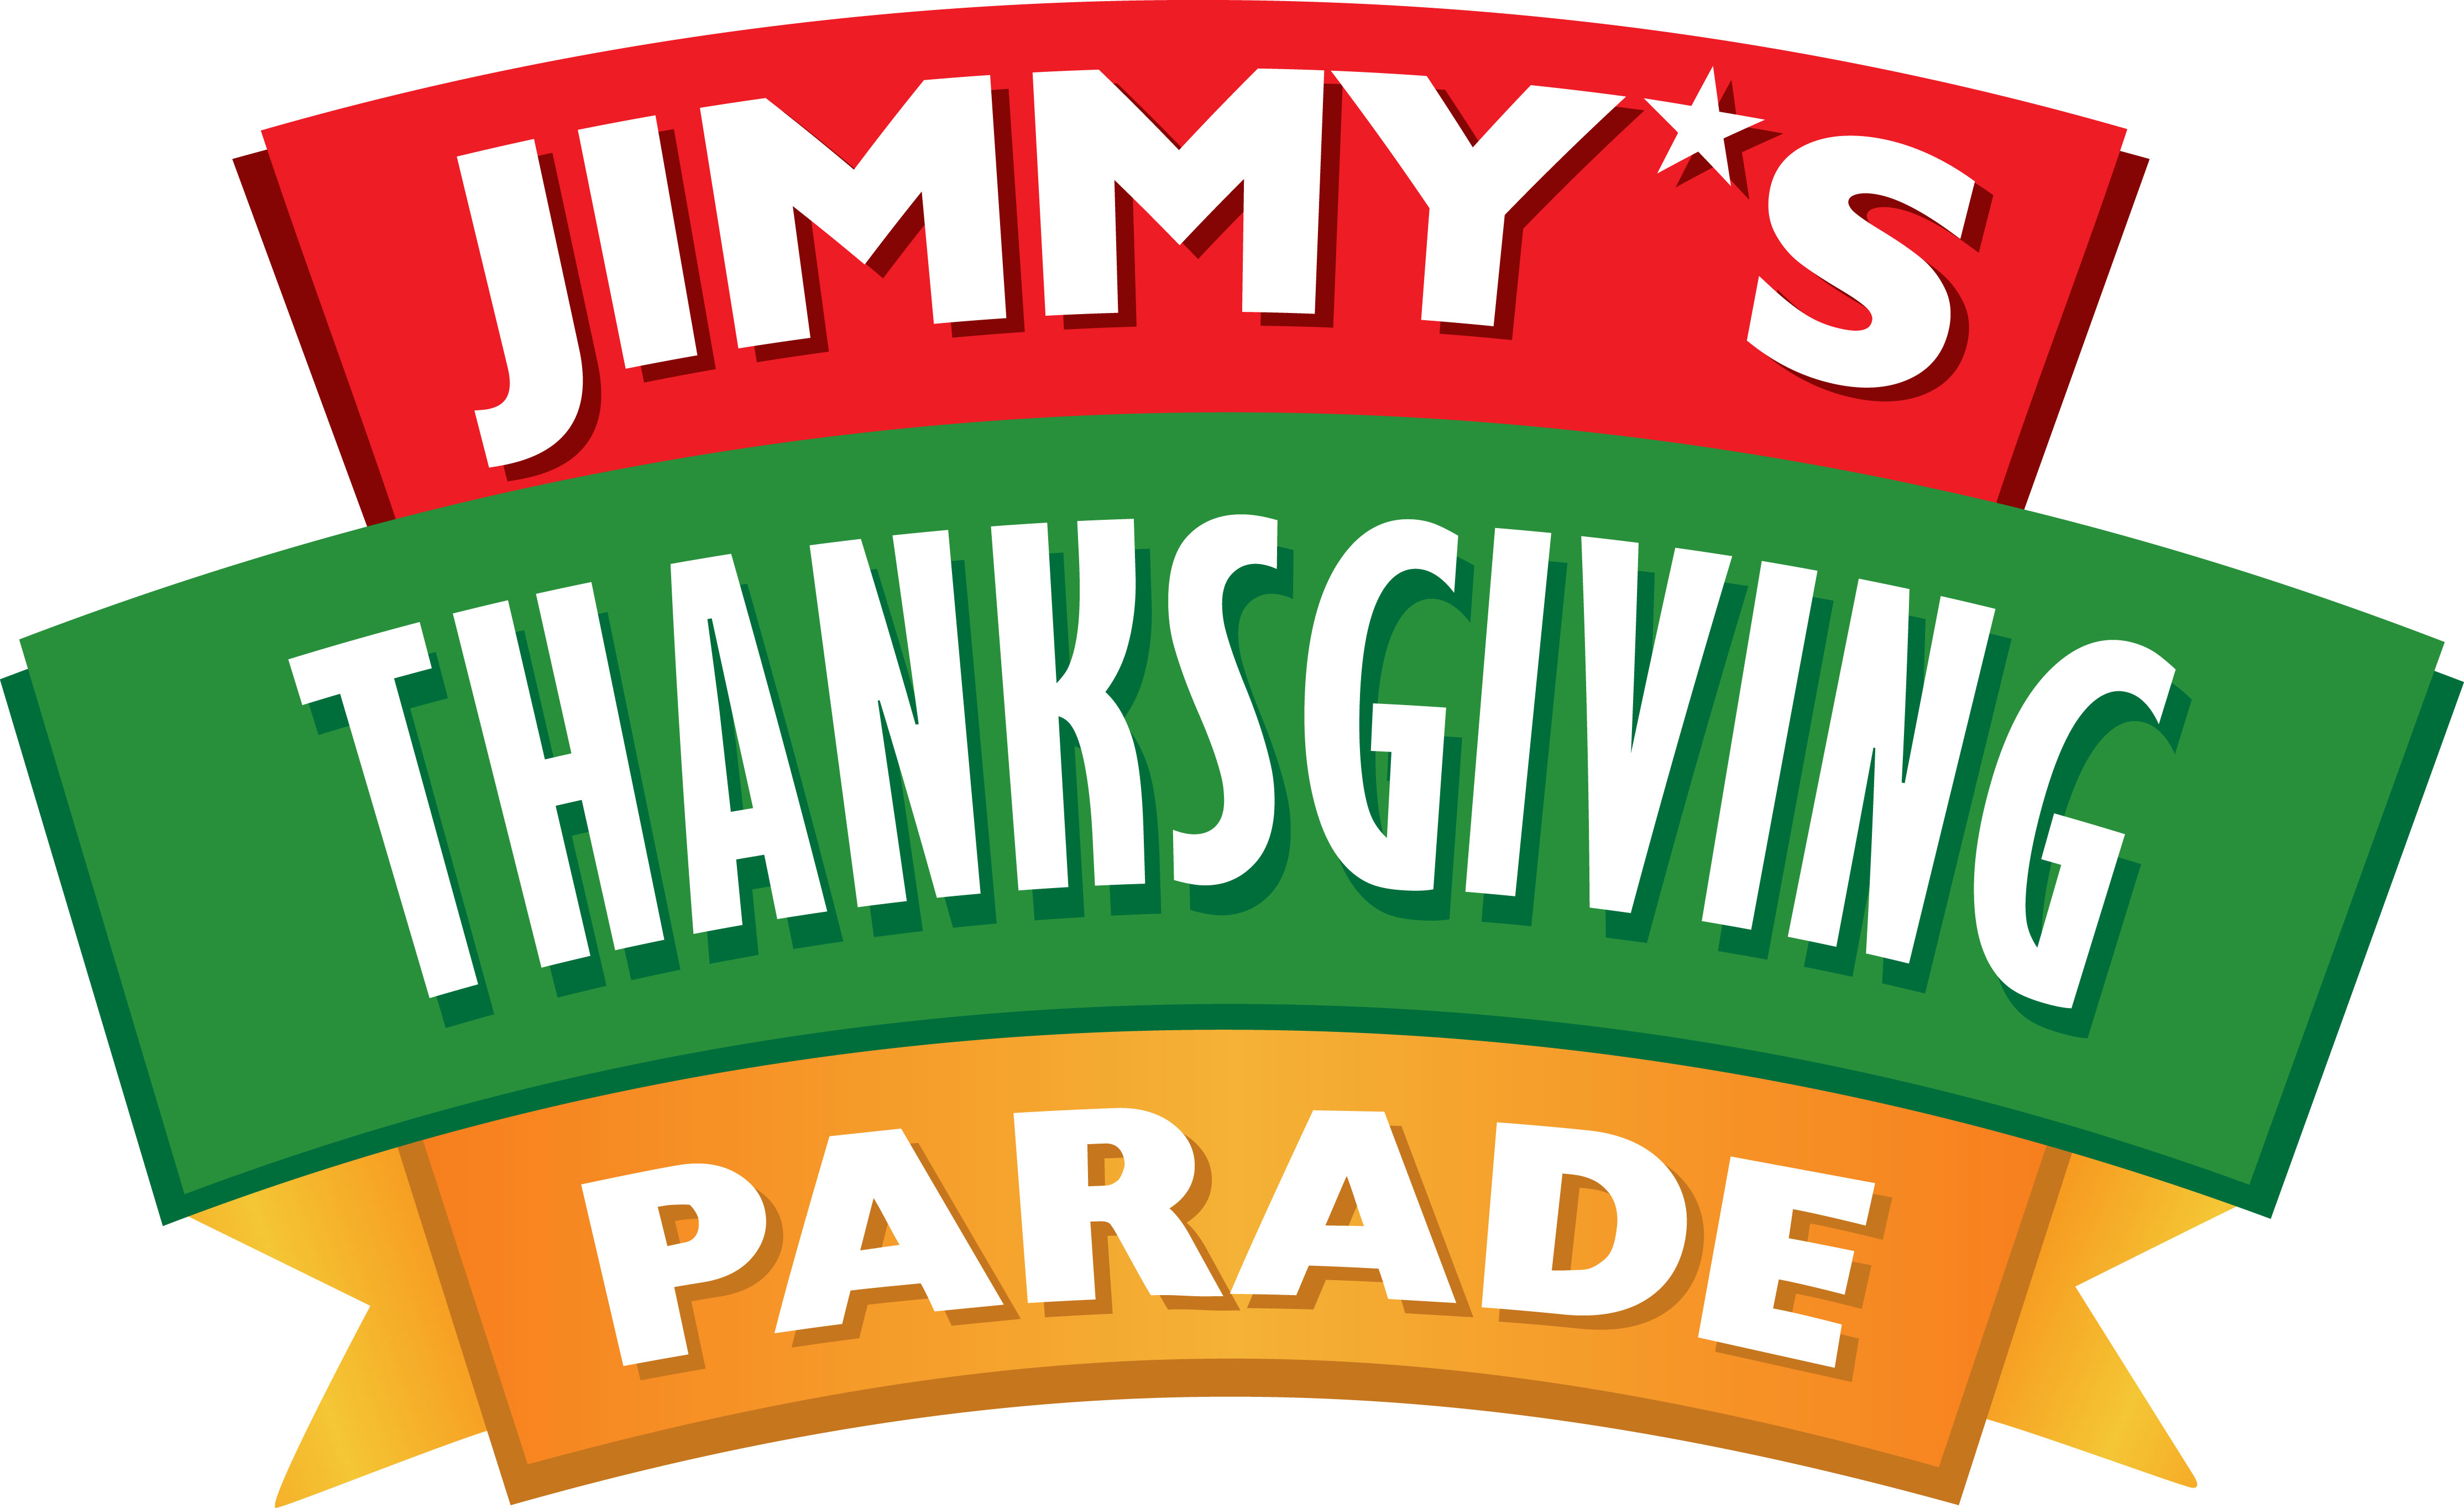 WELCOME TO JIMMY'S THANKSGIVING PARADE logo